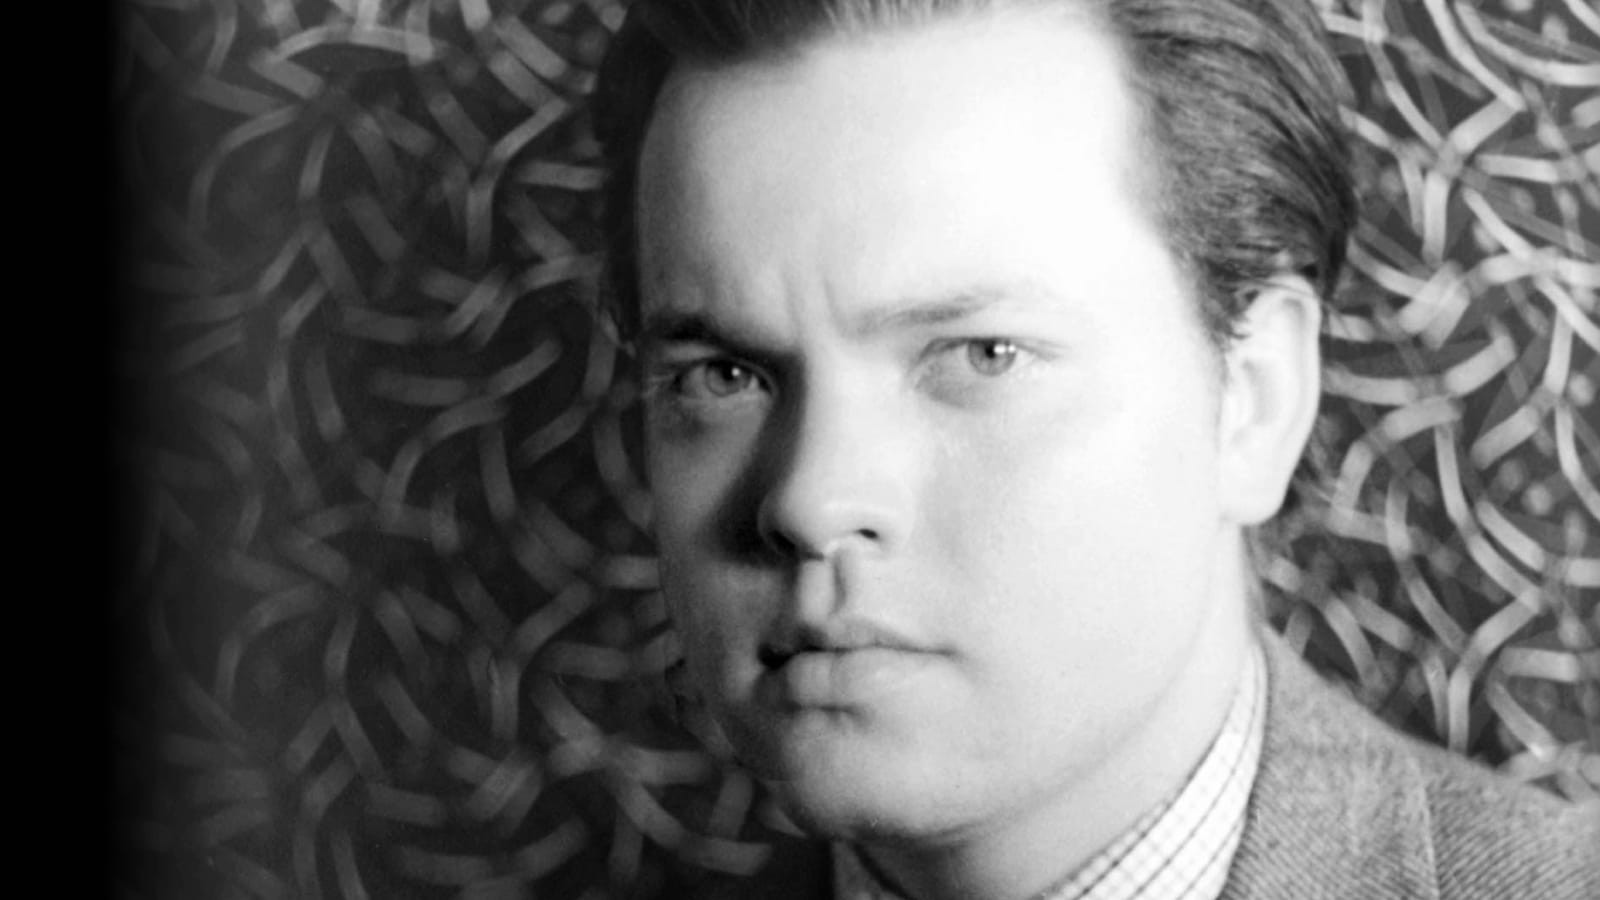 The Eyes of Orson Welles Opens at IFC Center